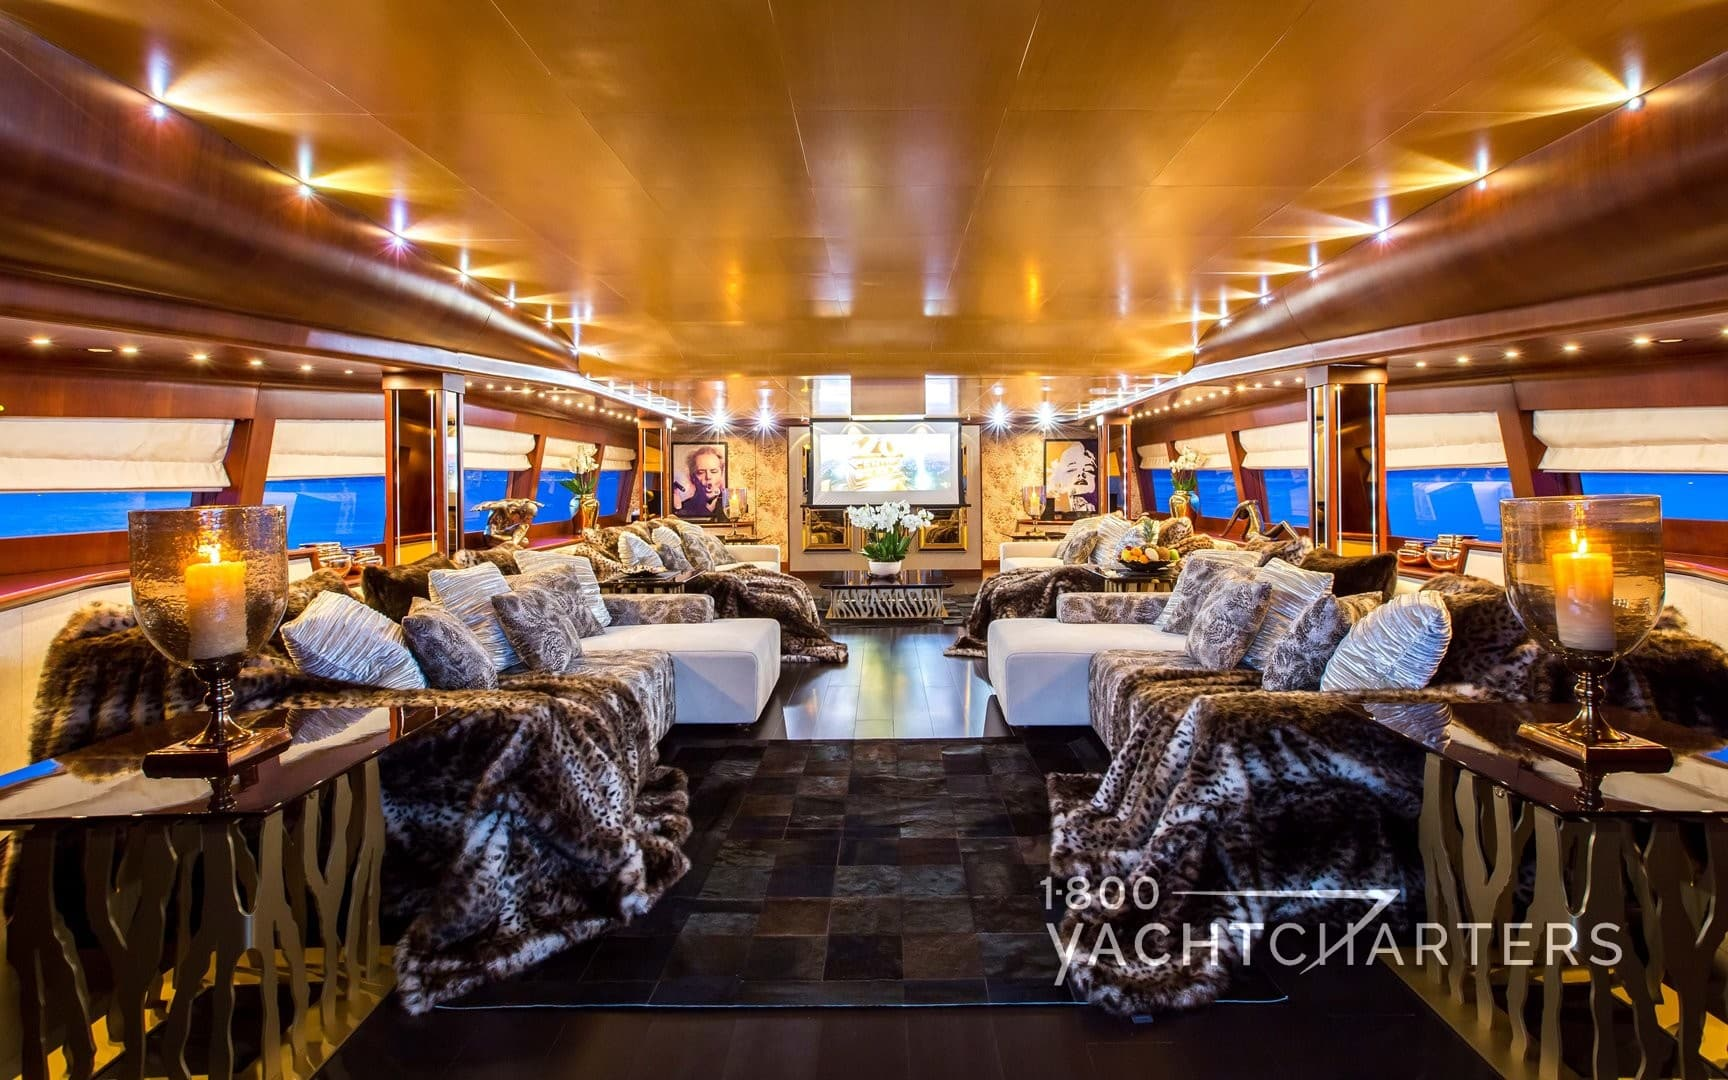 Yacht charter vessel ABILITY